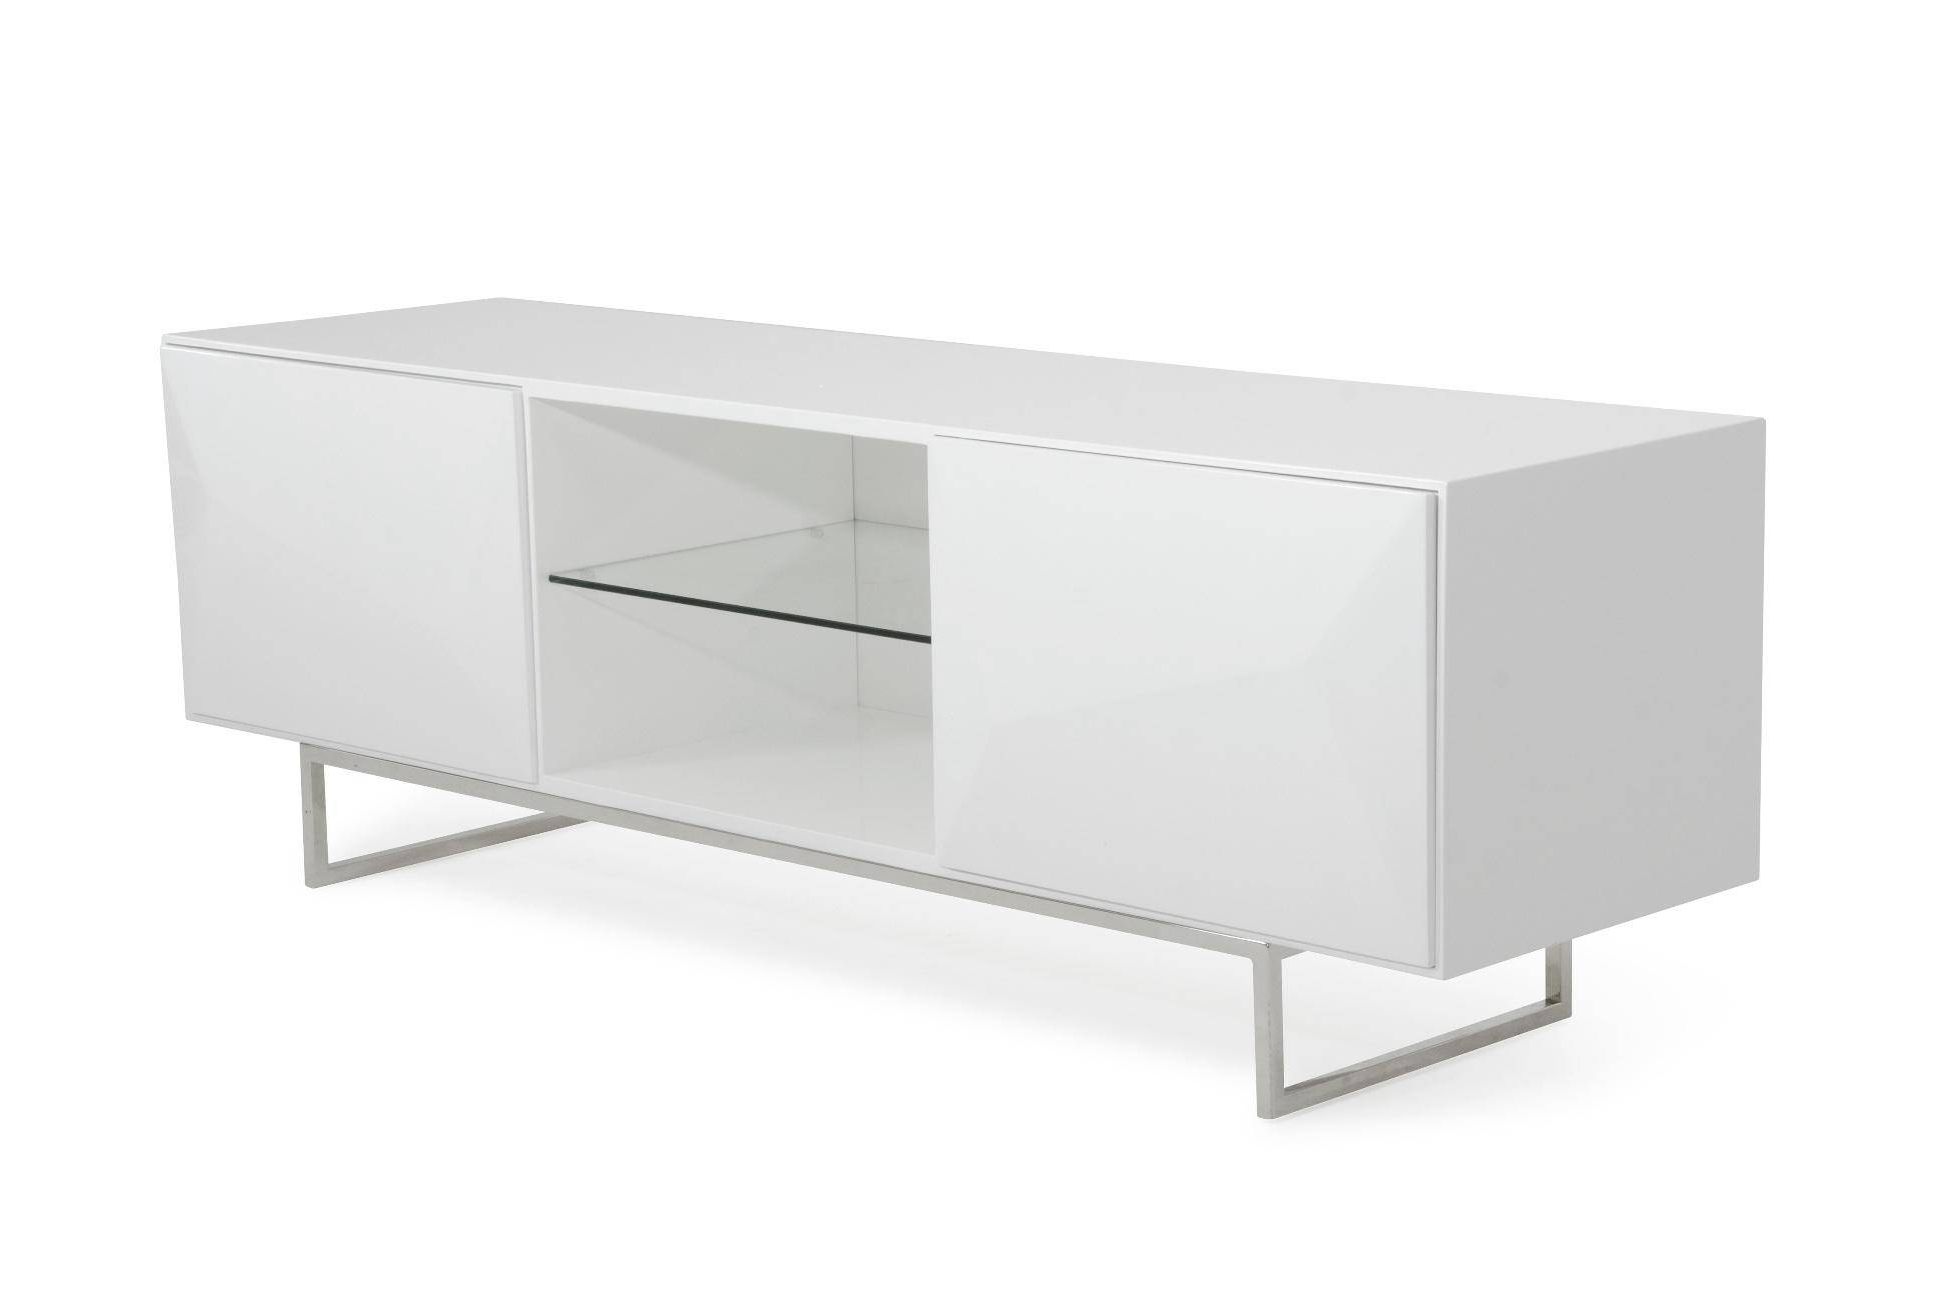 Preferred Vig Modrest Vanguard Modern Glossy White Tv Stand Contemporary Pertaining To Contemporary White Tv Stands (Gallery 15 of 20)